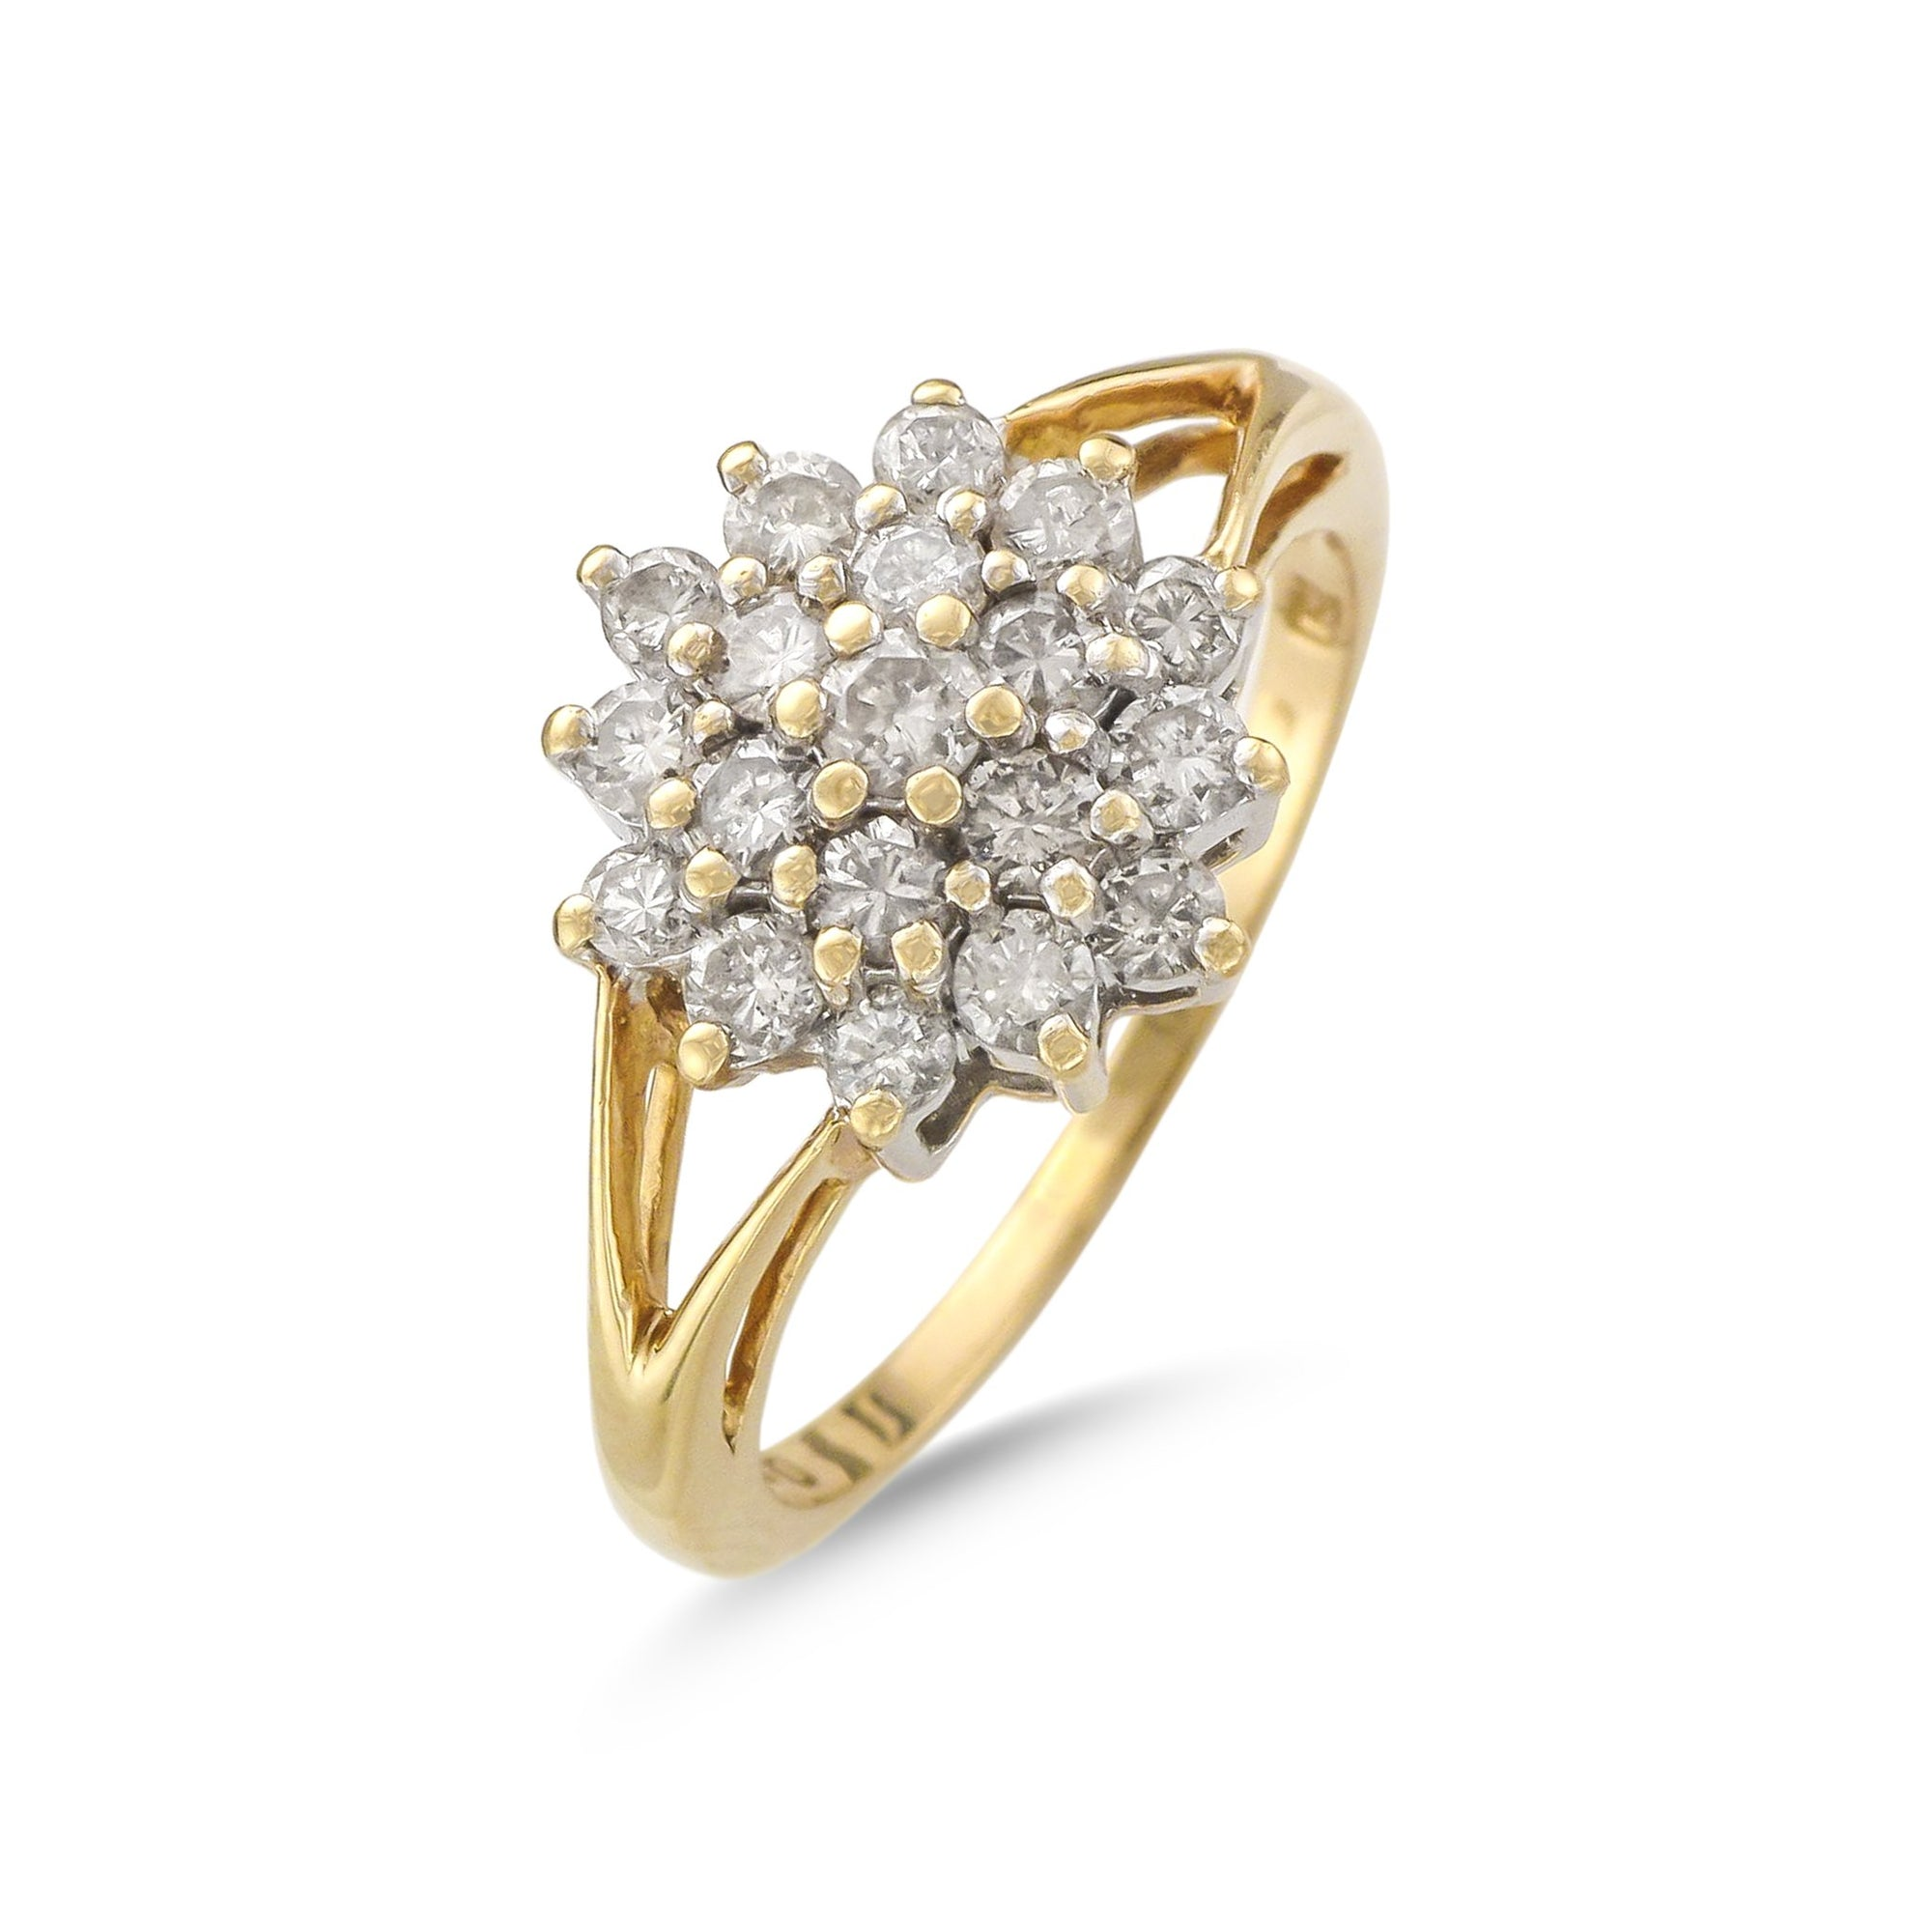 Vintage 18ct Yellow Gold Split Shank Diamond Cluster Ring